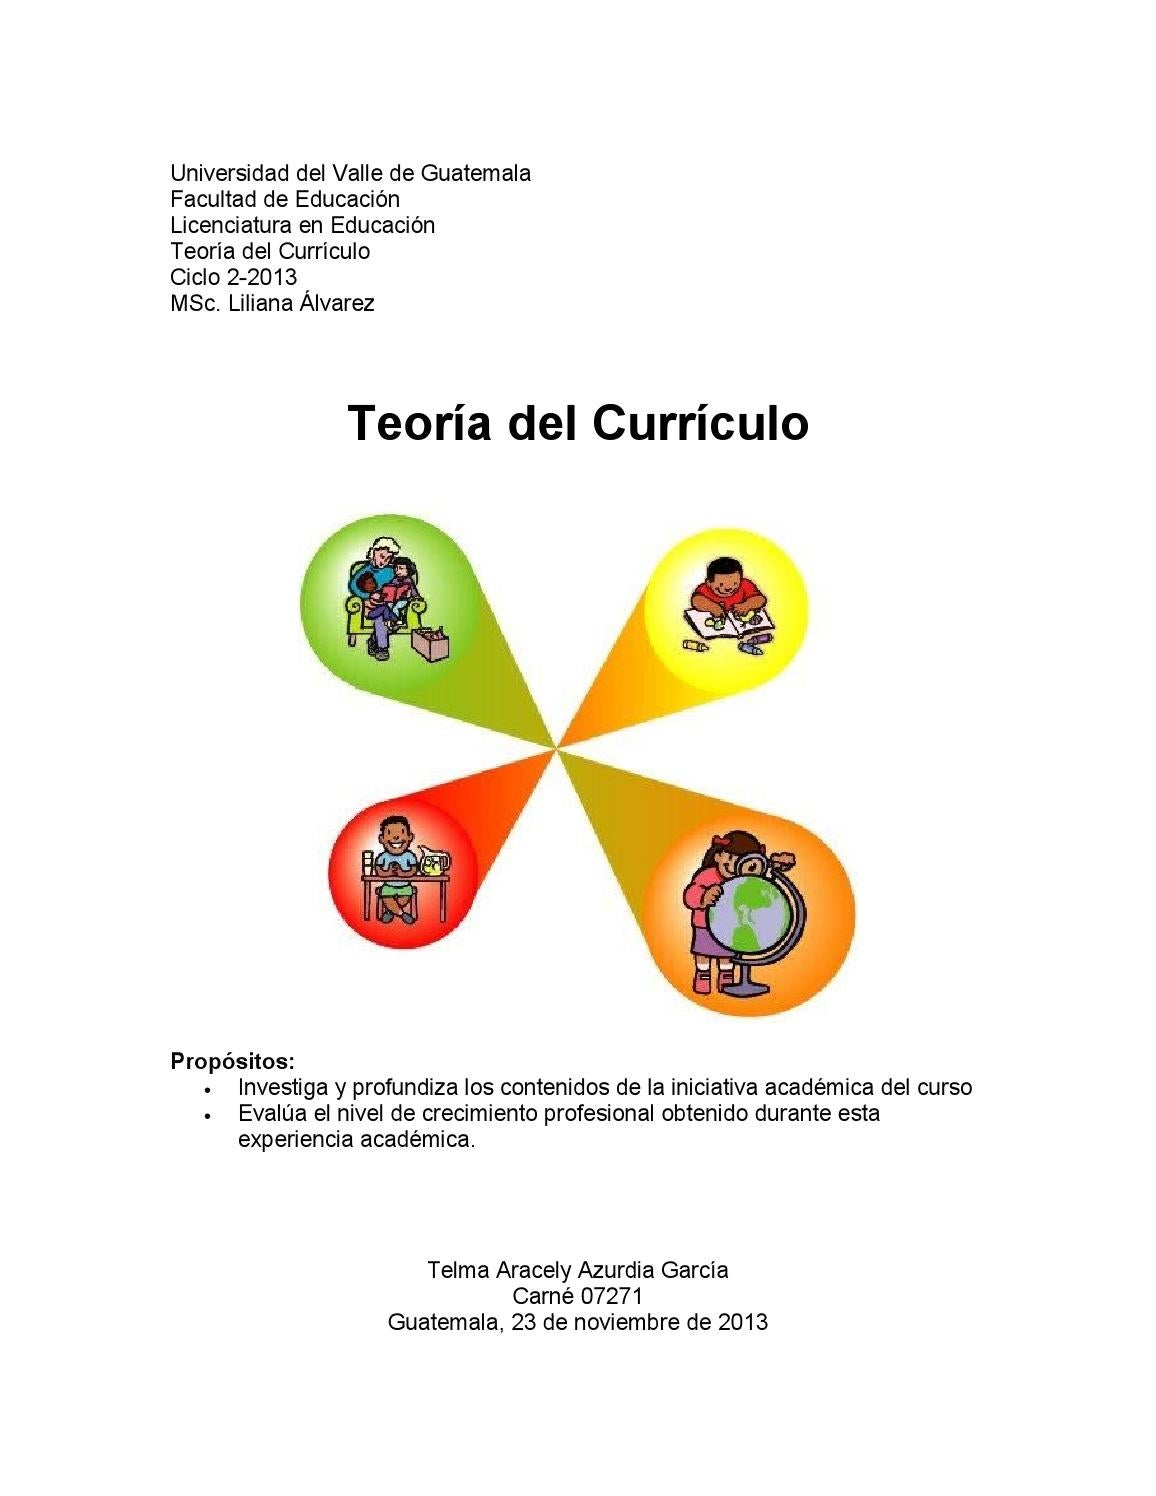 Teoria del curriculo by Telma Azurdia - issuu